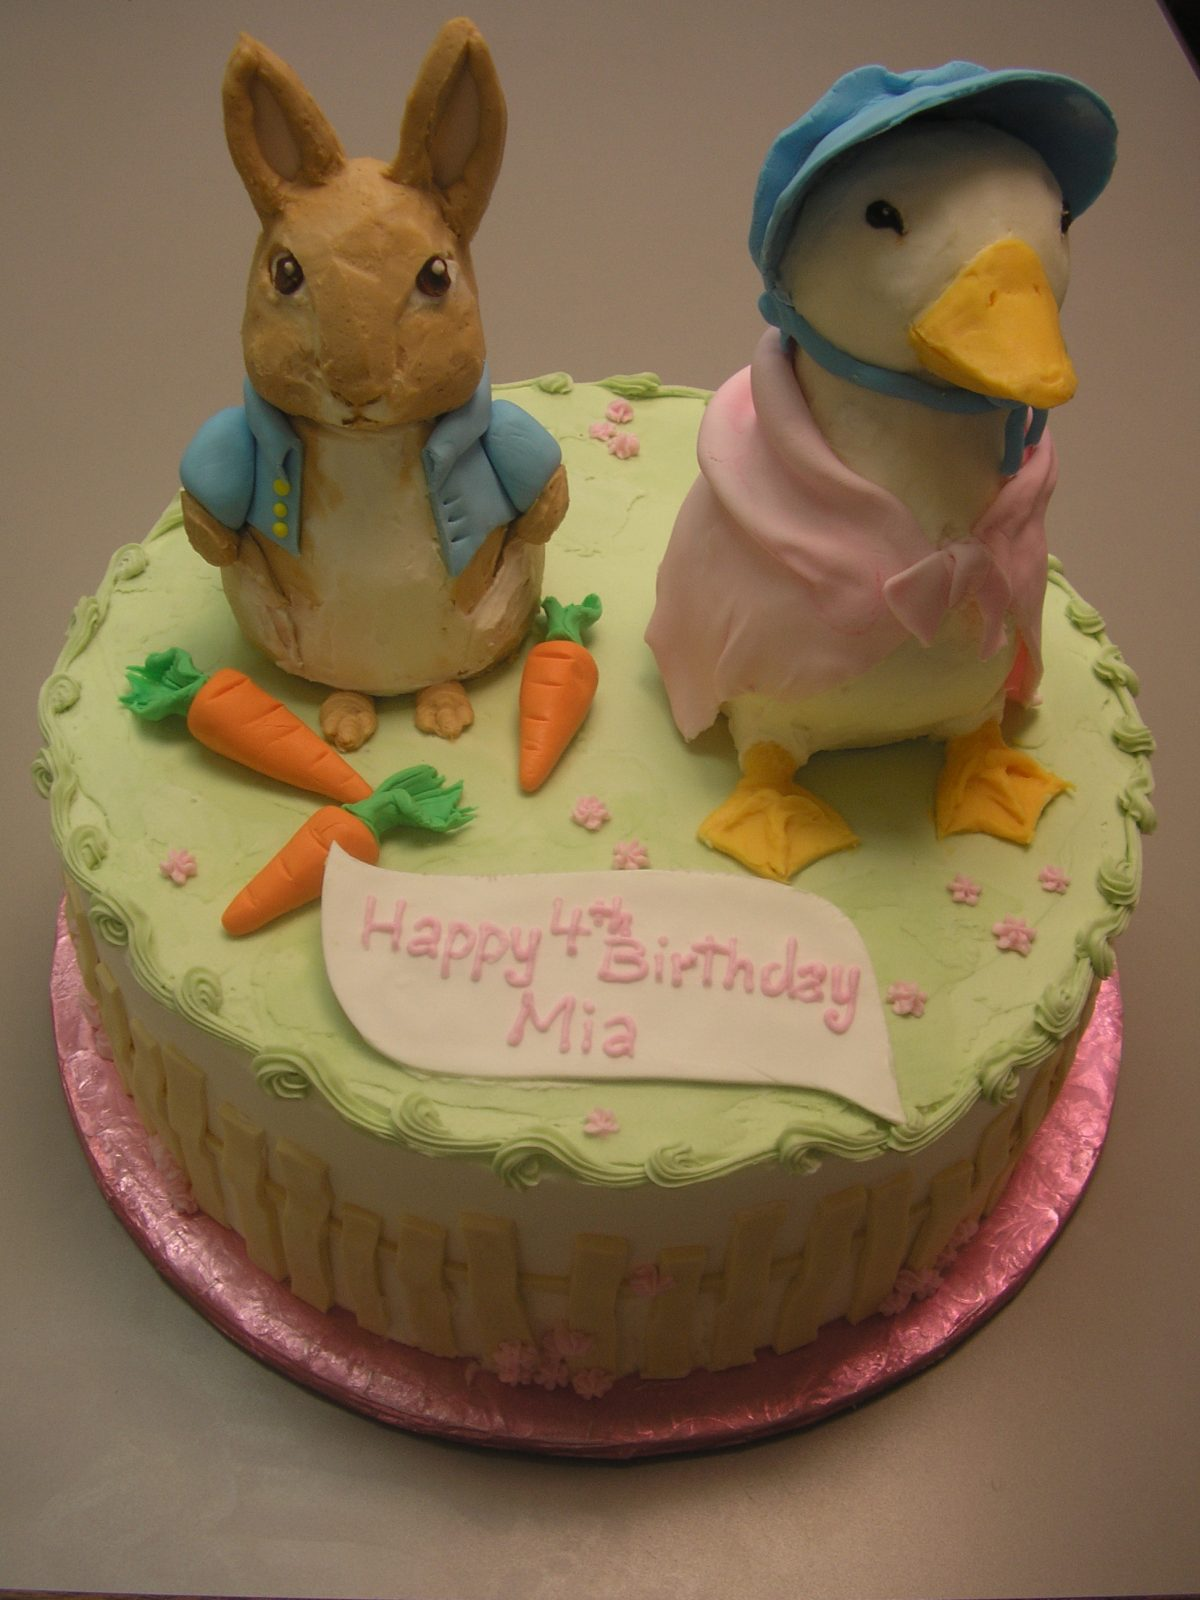 Beatrix potter cake, rabbit cake, duck cake